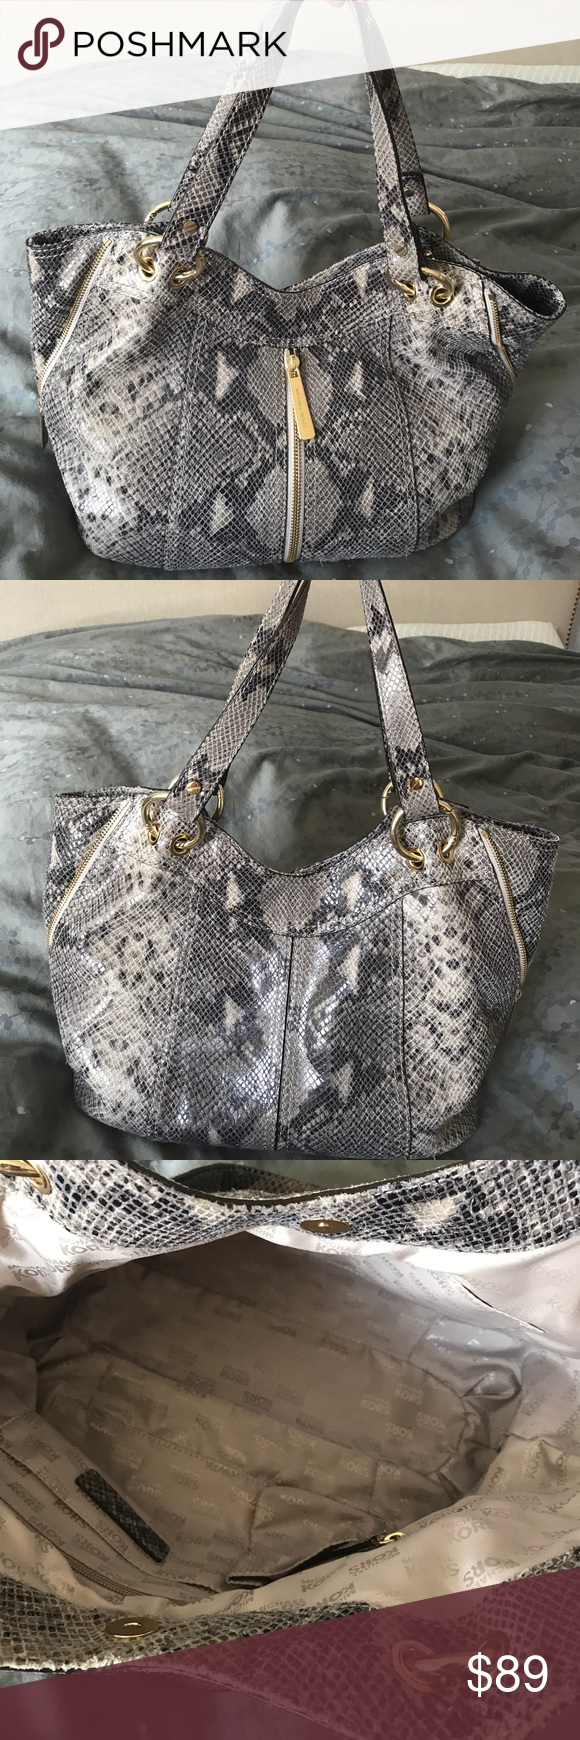 """Michael Kors snakeskin tote bag Gray python tote with gold hardware. Stylish zippers on the front and side. Roomy interior. Gently used. Dimensions are at bottom of bag: 13"""" x  10.5 x  3"""". Michael Kors Bags Totes"""